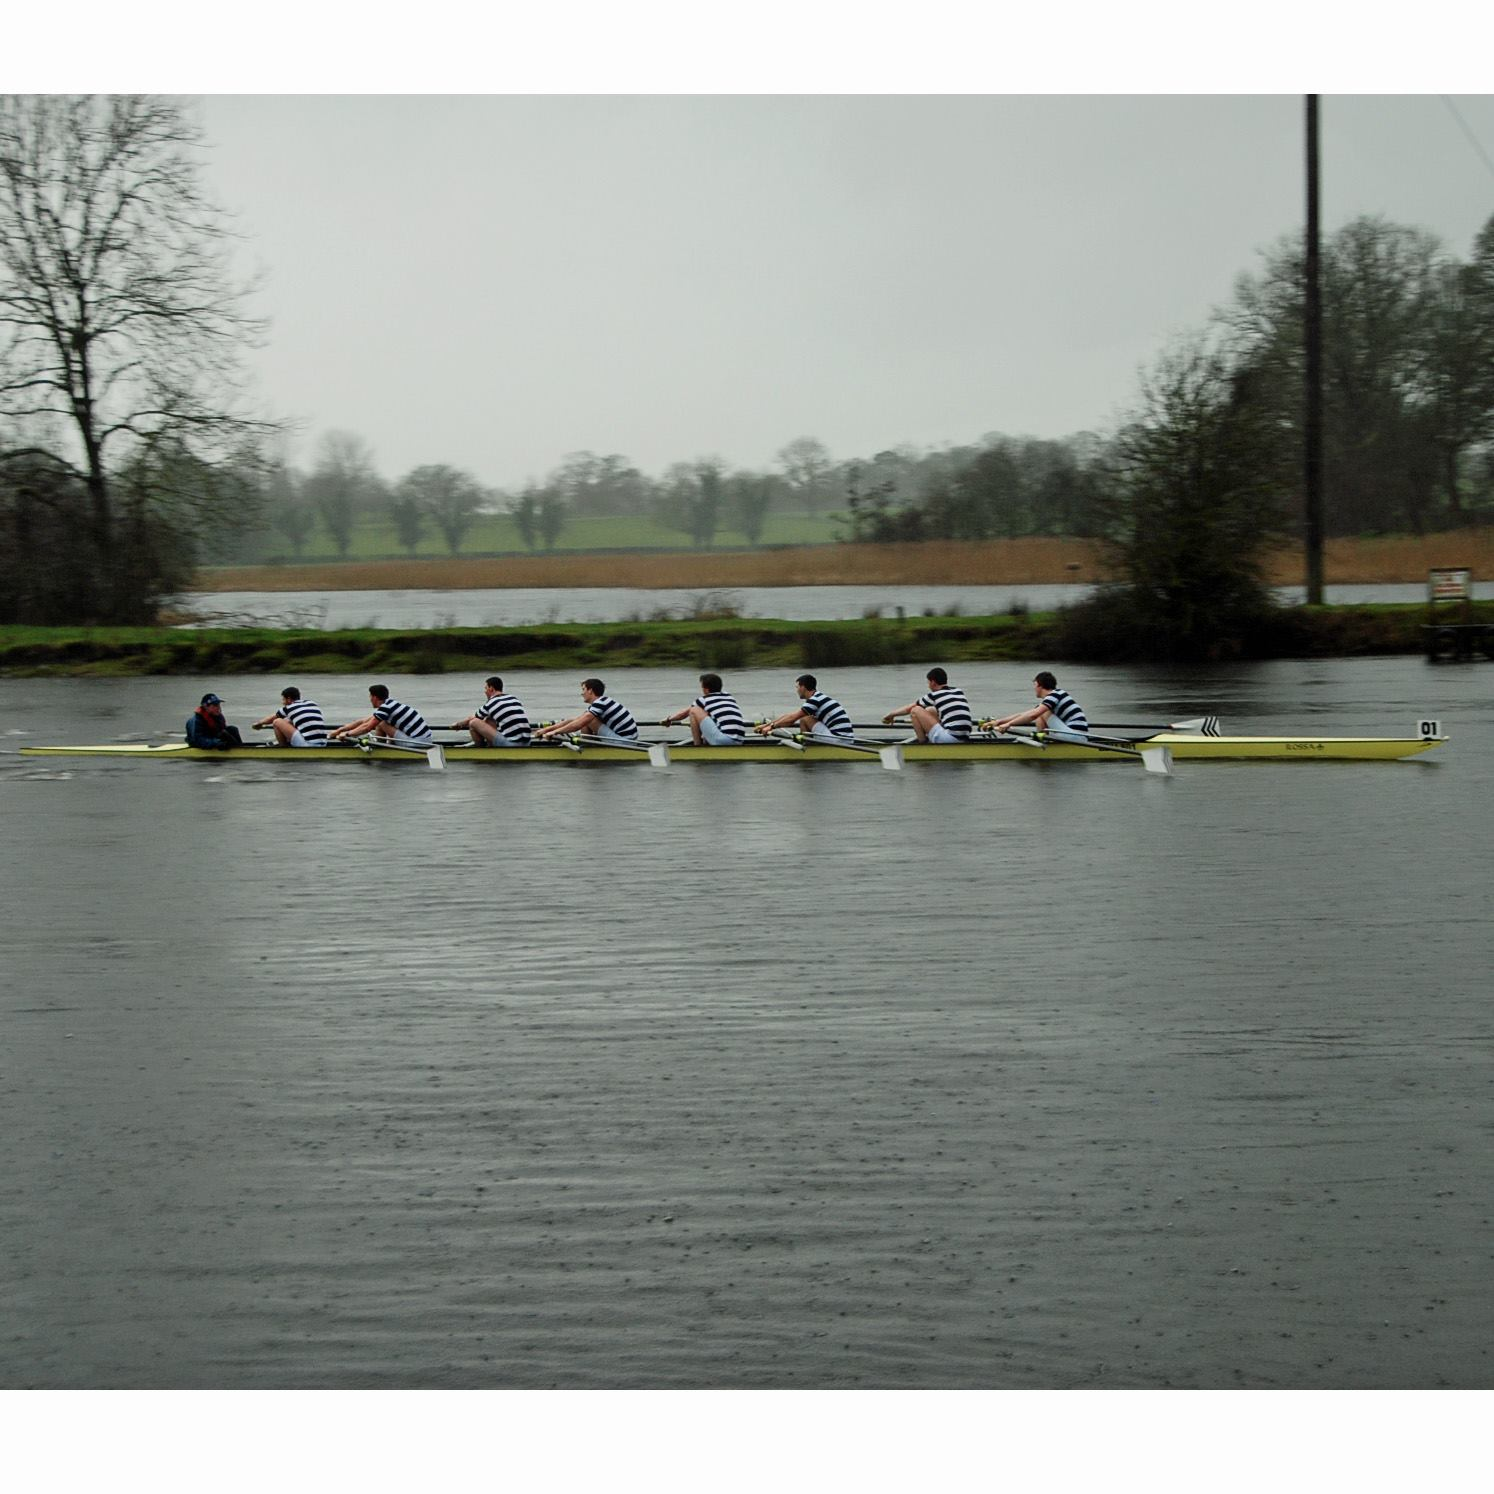 The Senior 8+ driving for home